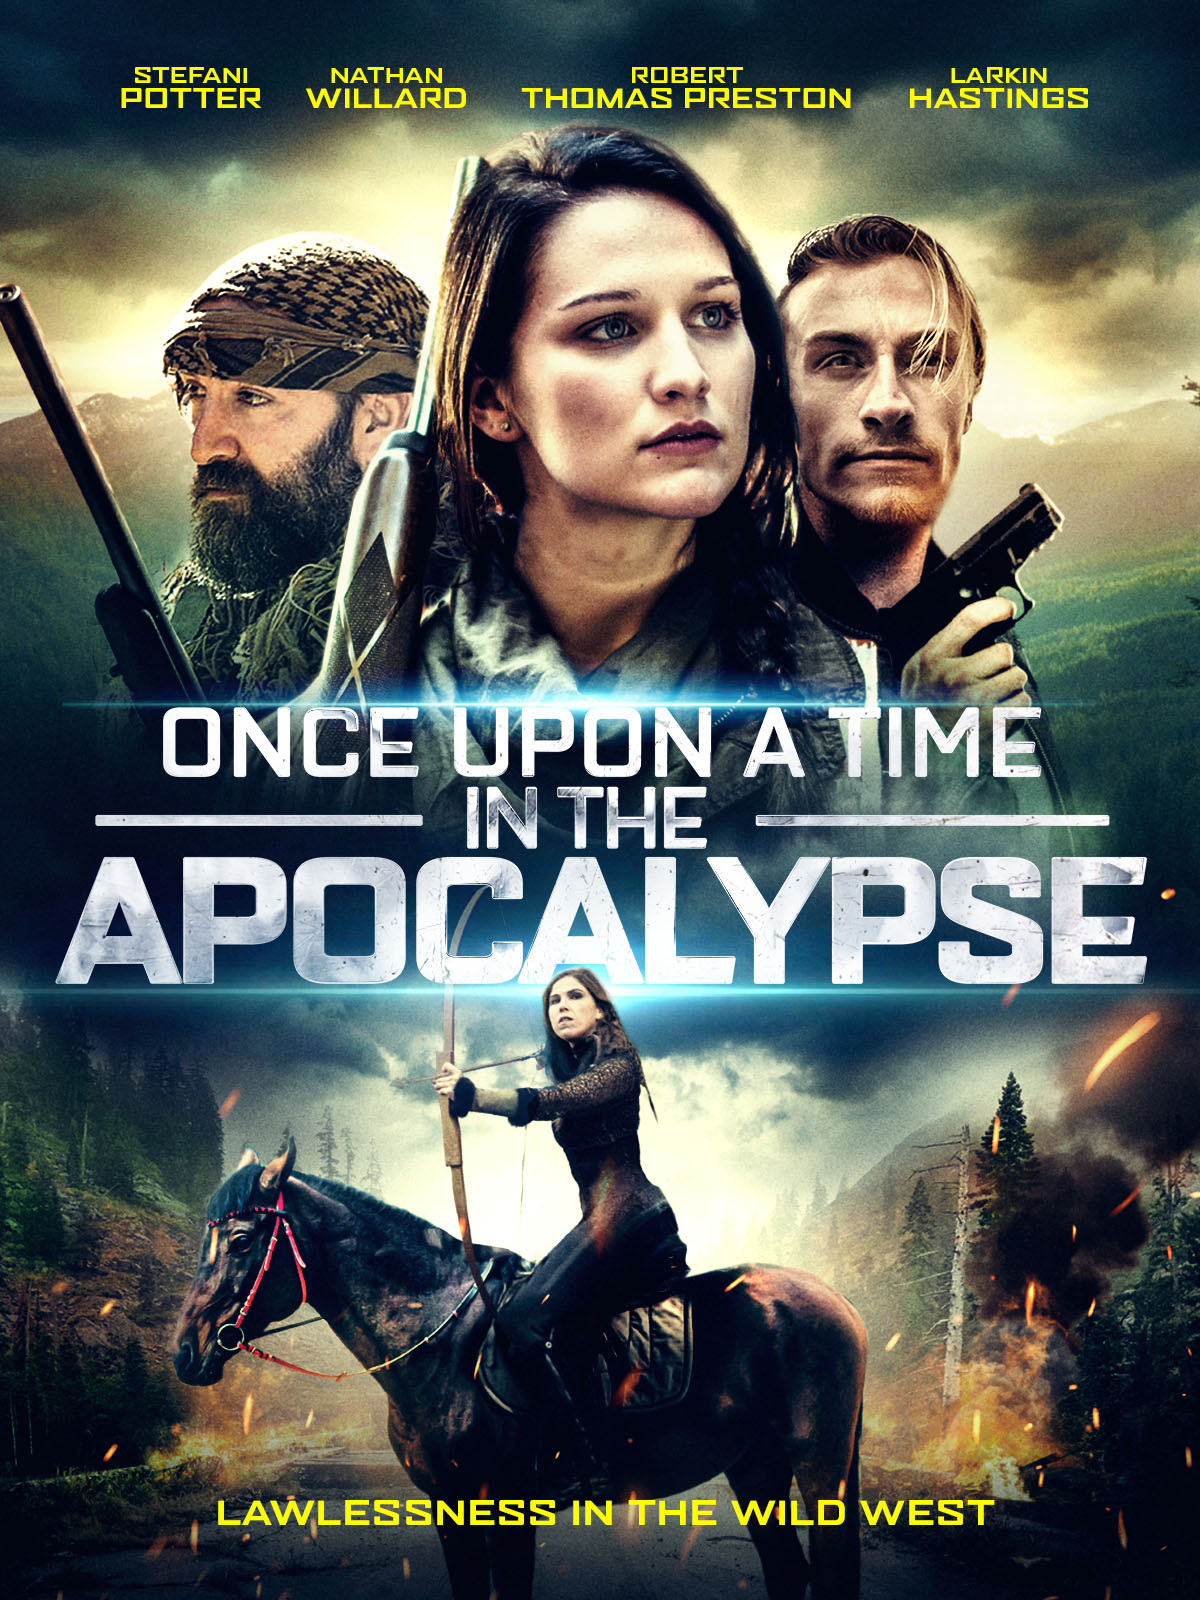 Once Upon A Time In The Apocalypse (2019) Telugu Dubbed (Voice Over) [Dual Audio] WebRip 720p [1XBET]